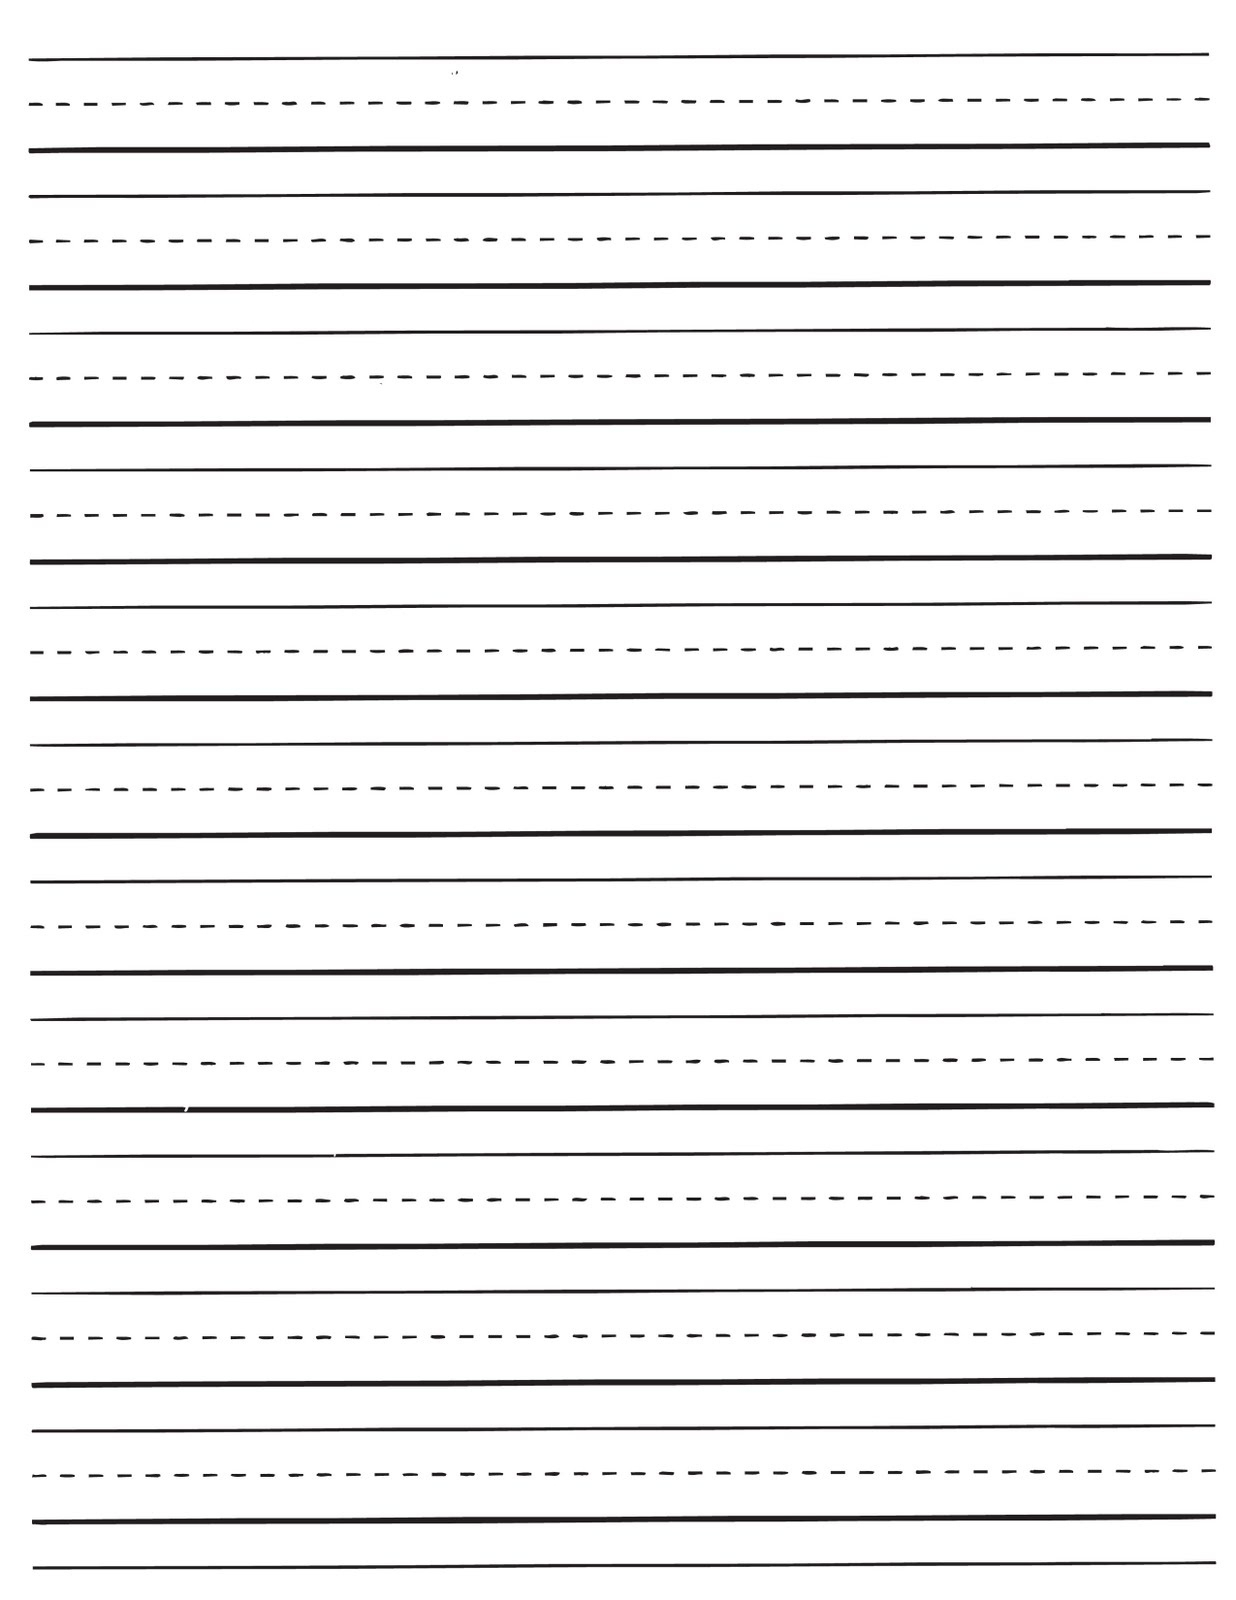 Printable Lined Paper For Kids   World Of Label - Free Printable Lined Paper